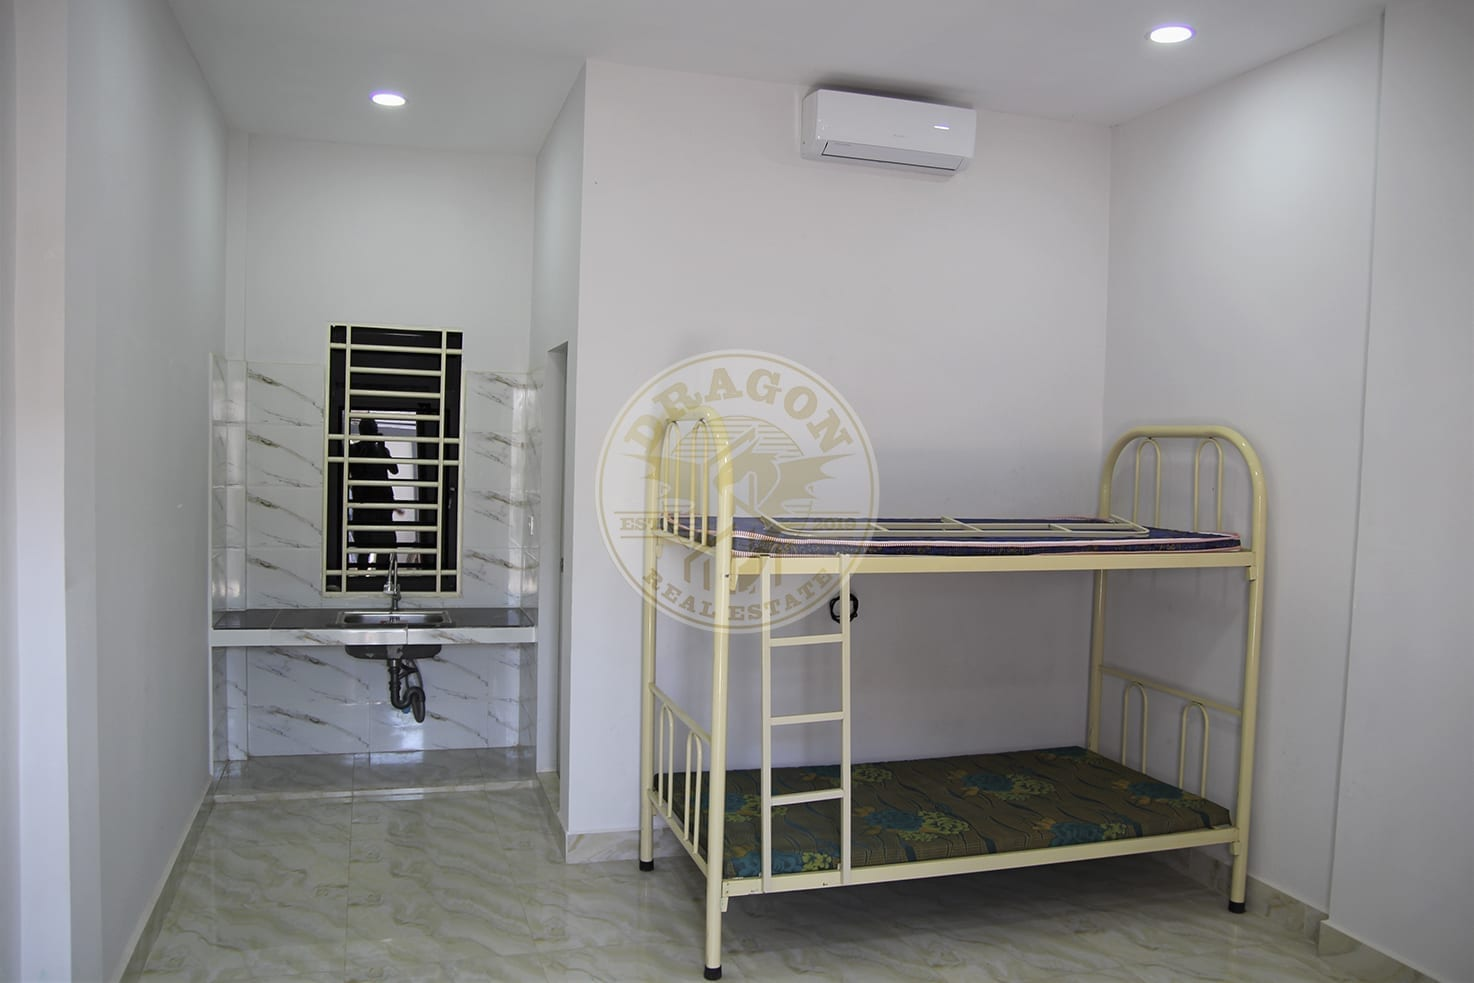 Affordable Studio for Rent. Sihanoukville Monthly Rental